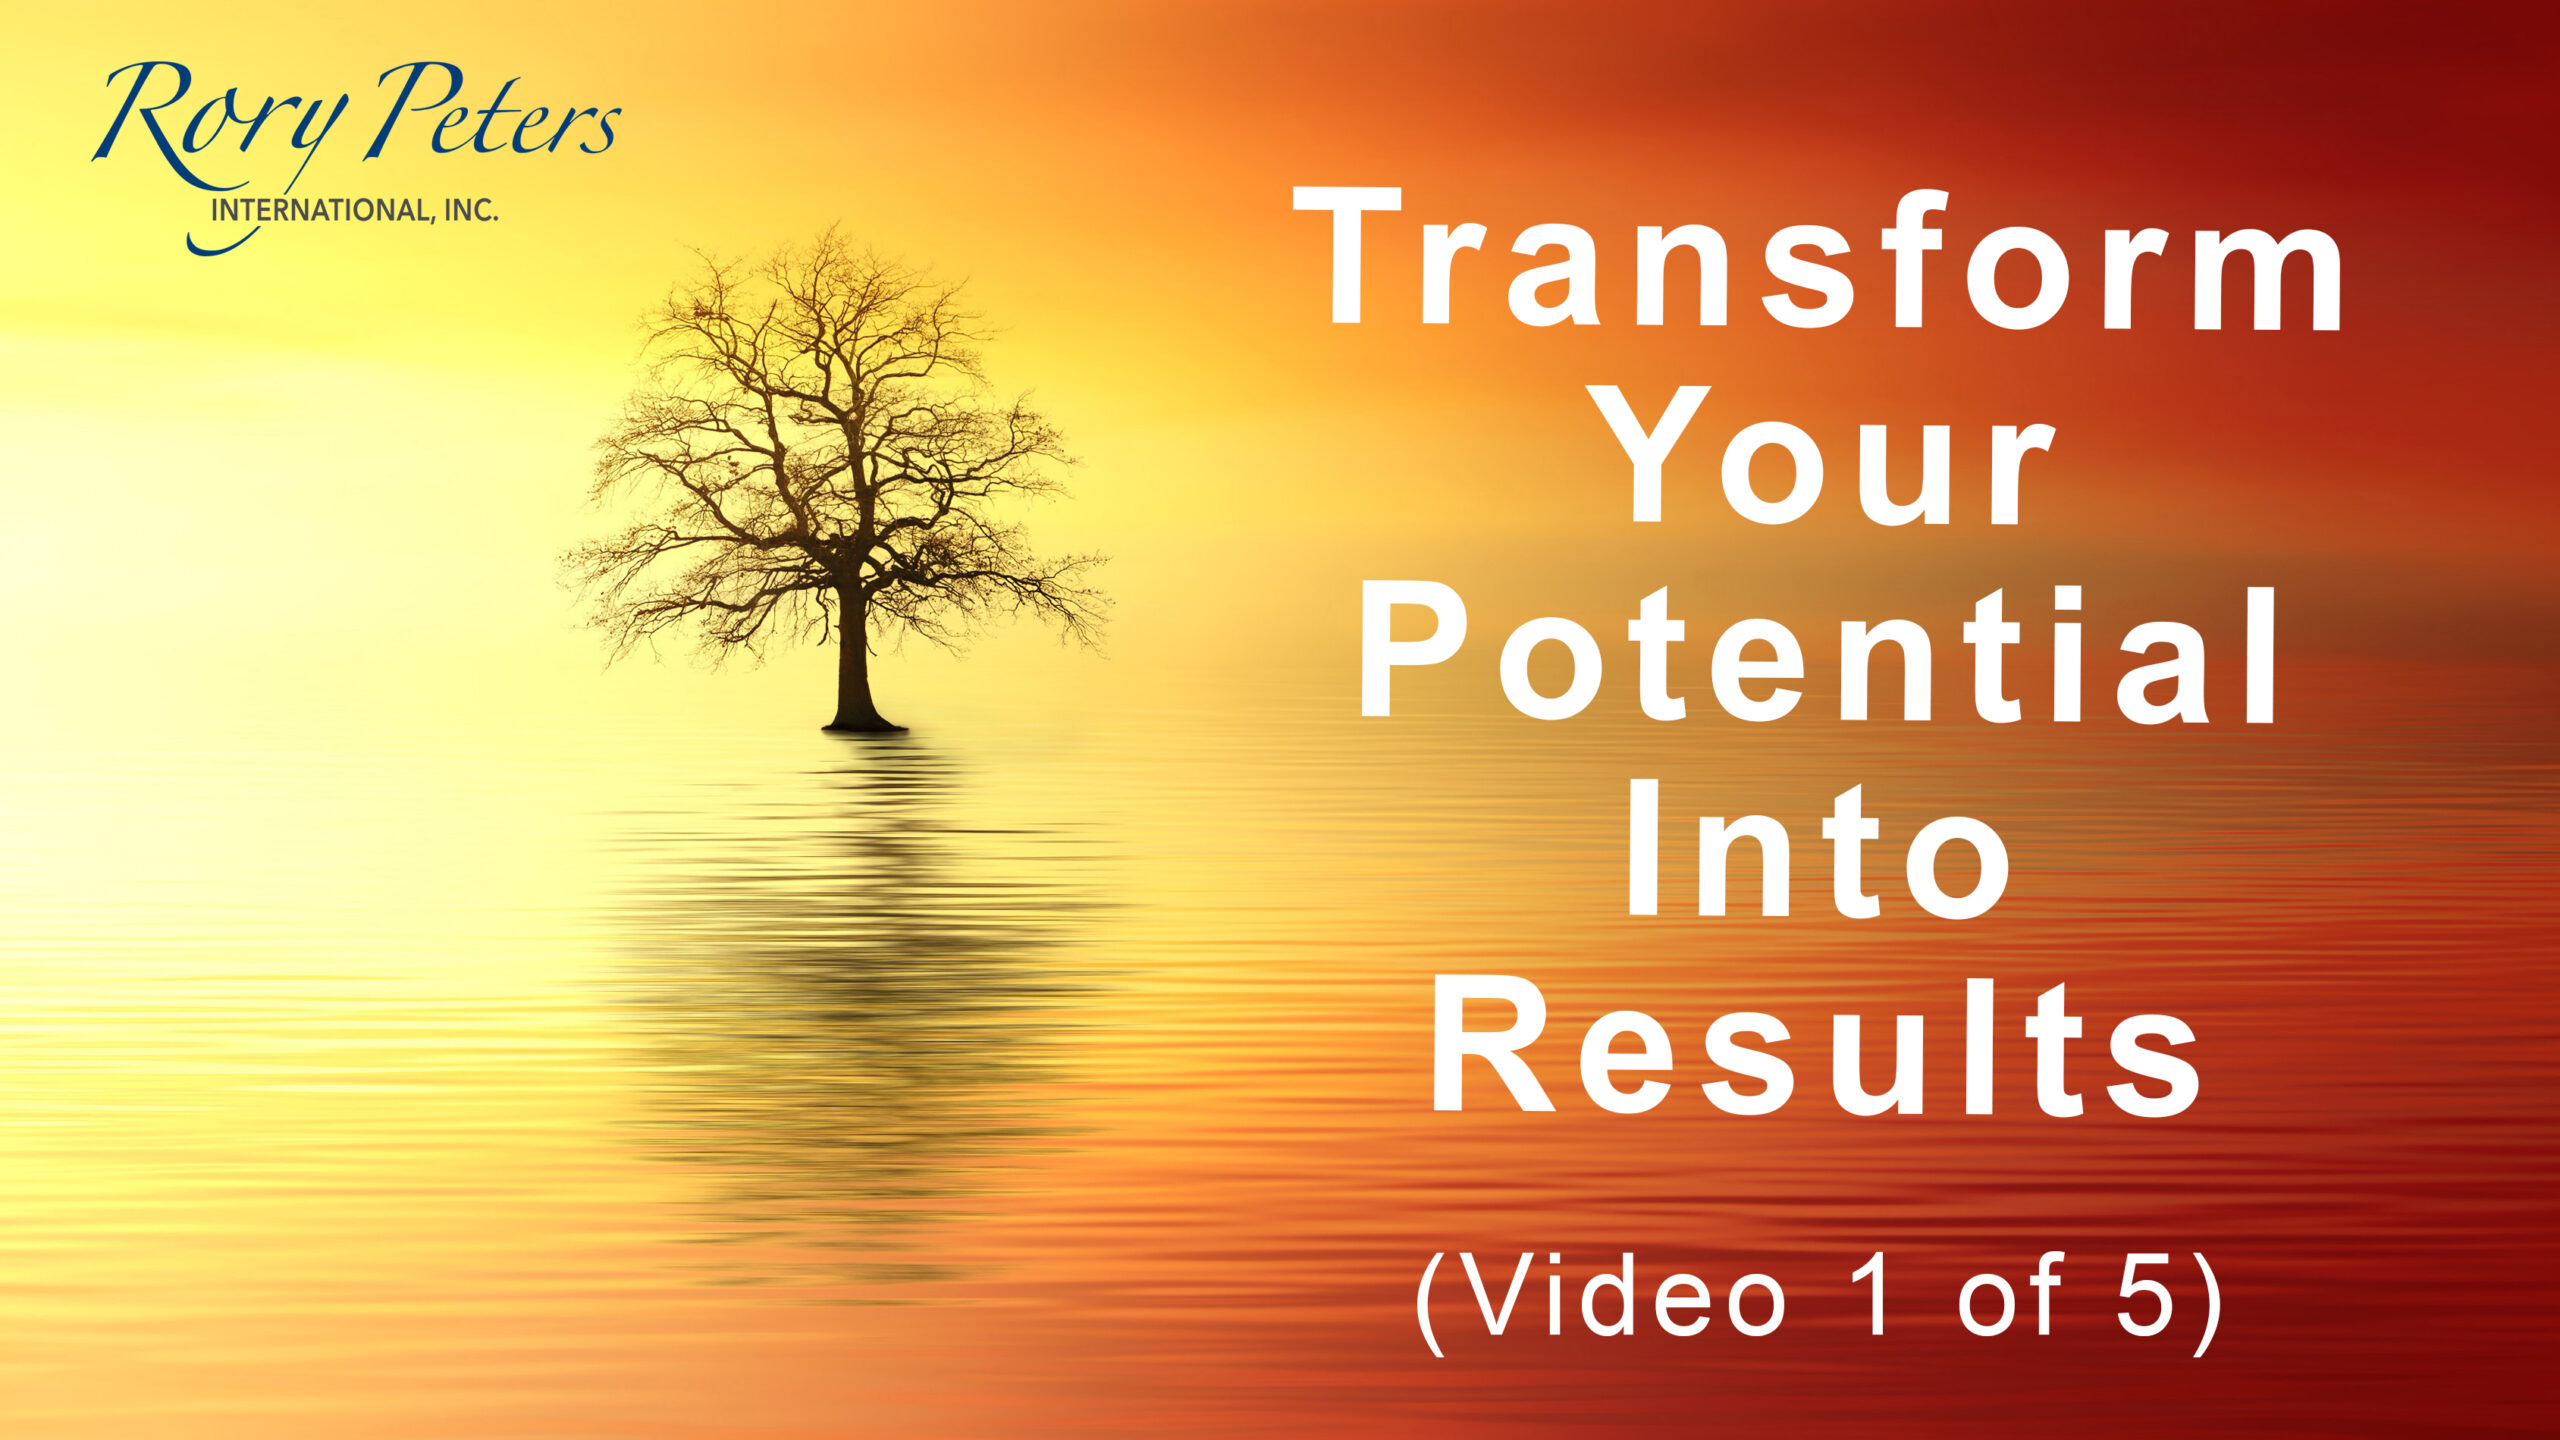 Transform Your Potential Into Results (1 of 5)Transform Your Potential Into Results (1 of 5)